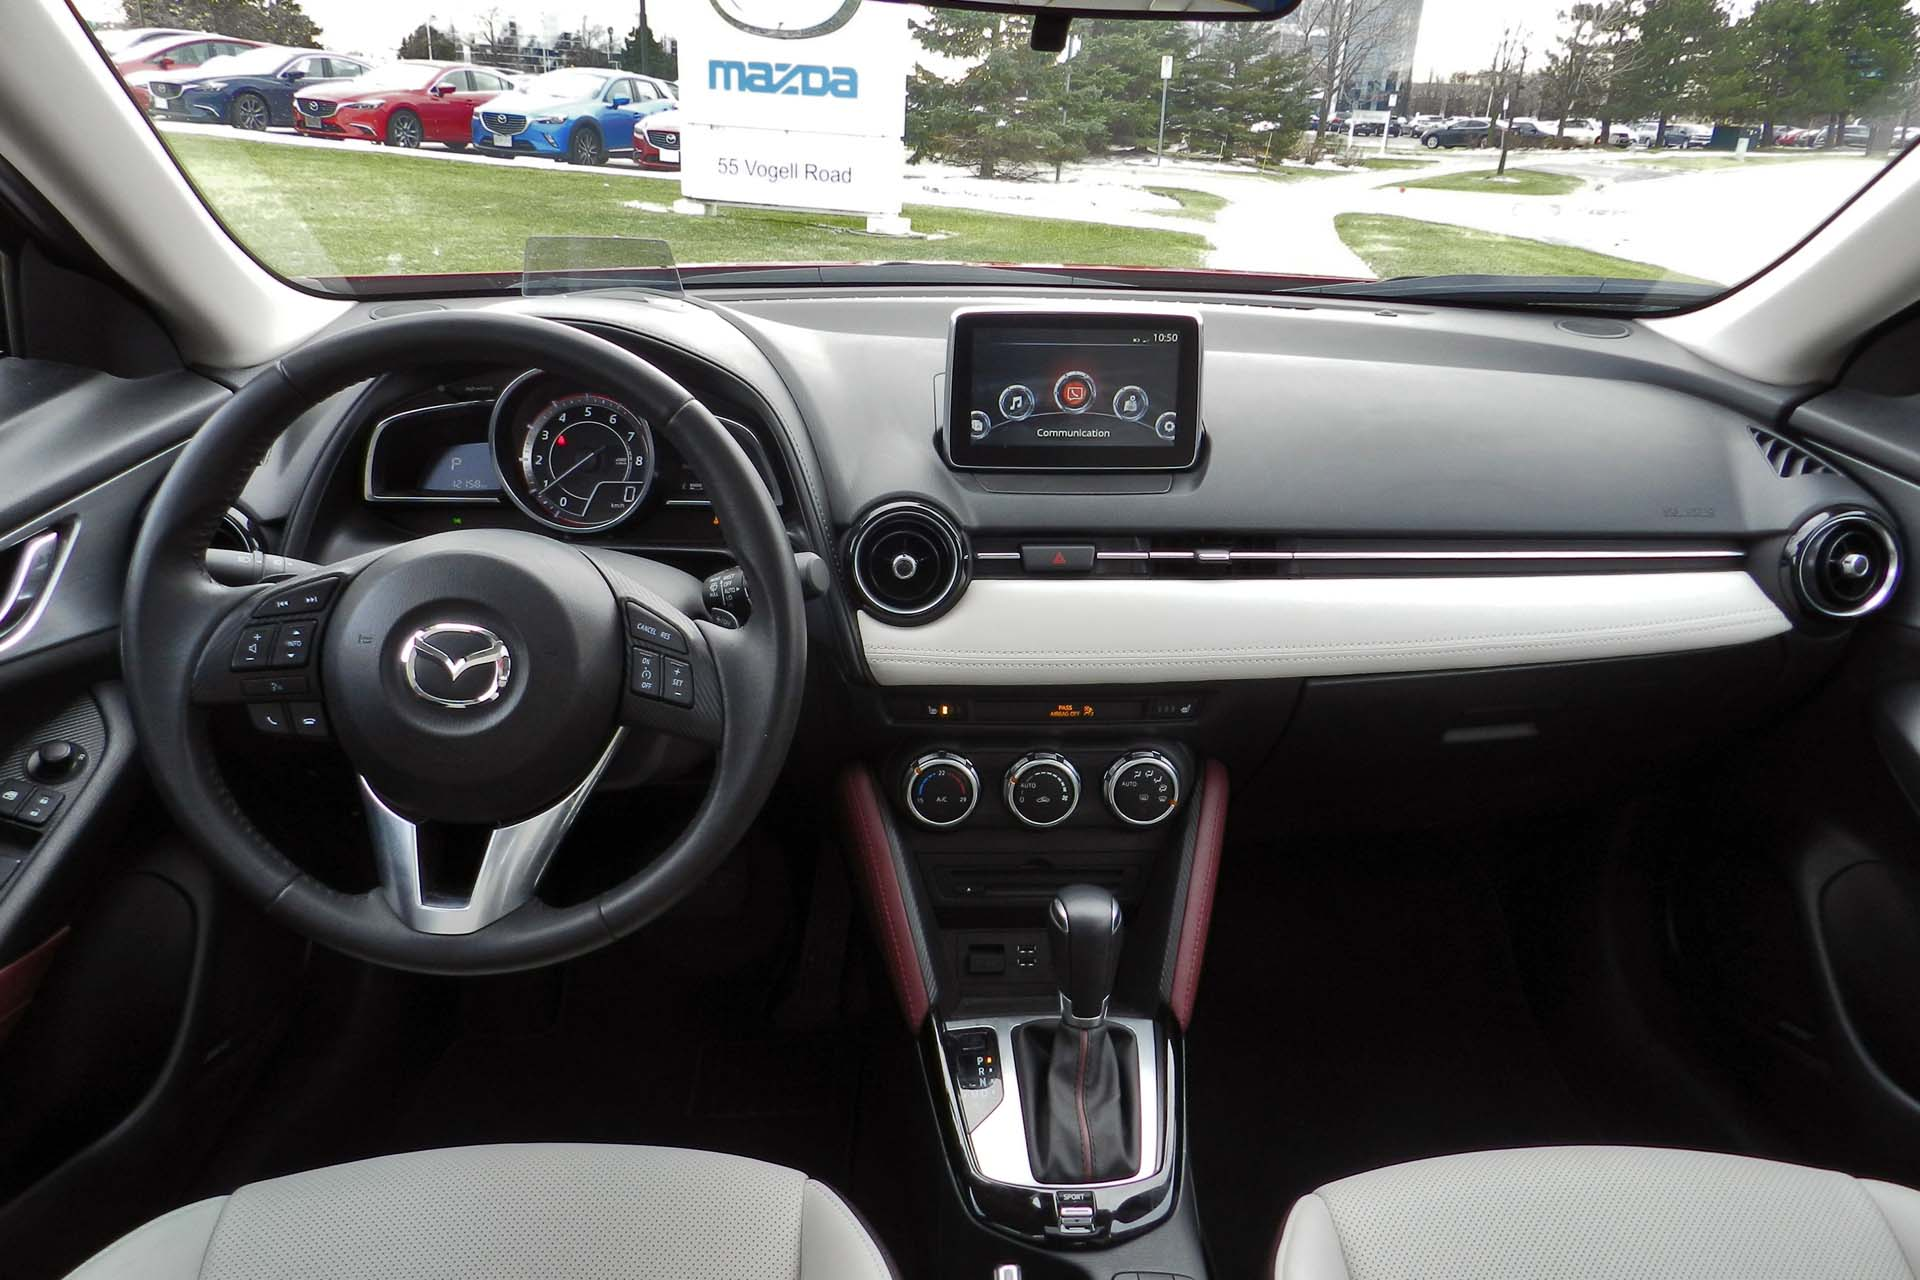 gt test june term cx mazda long update expert